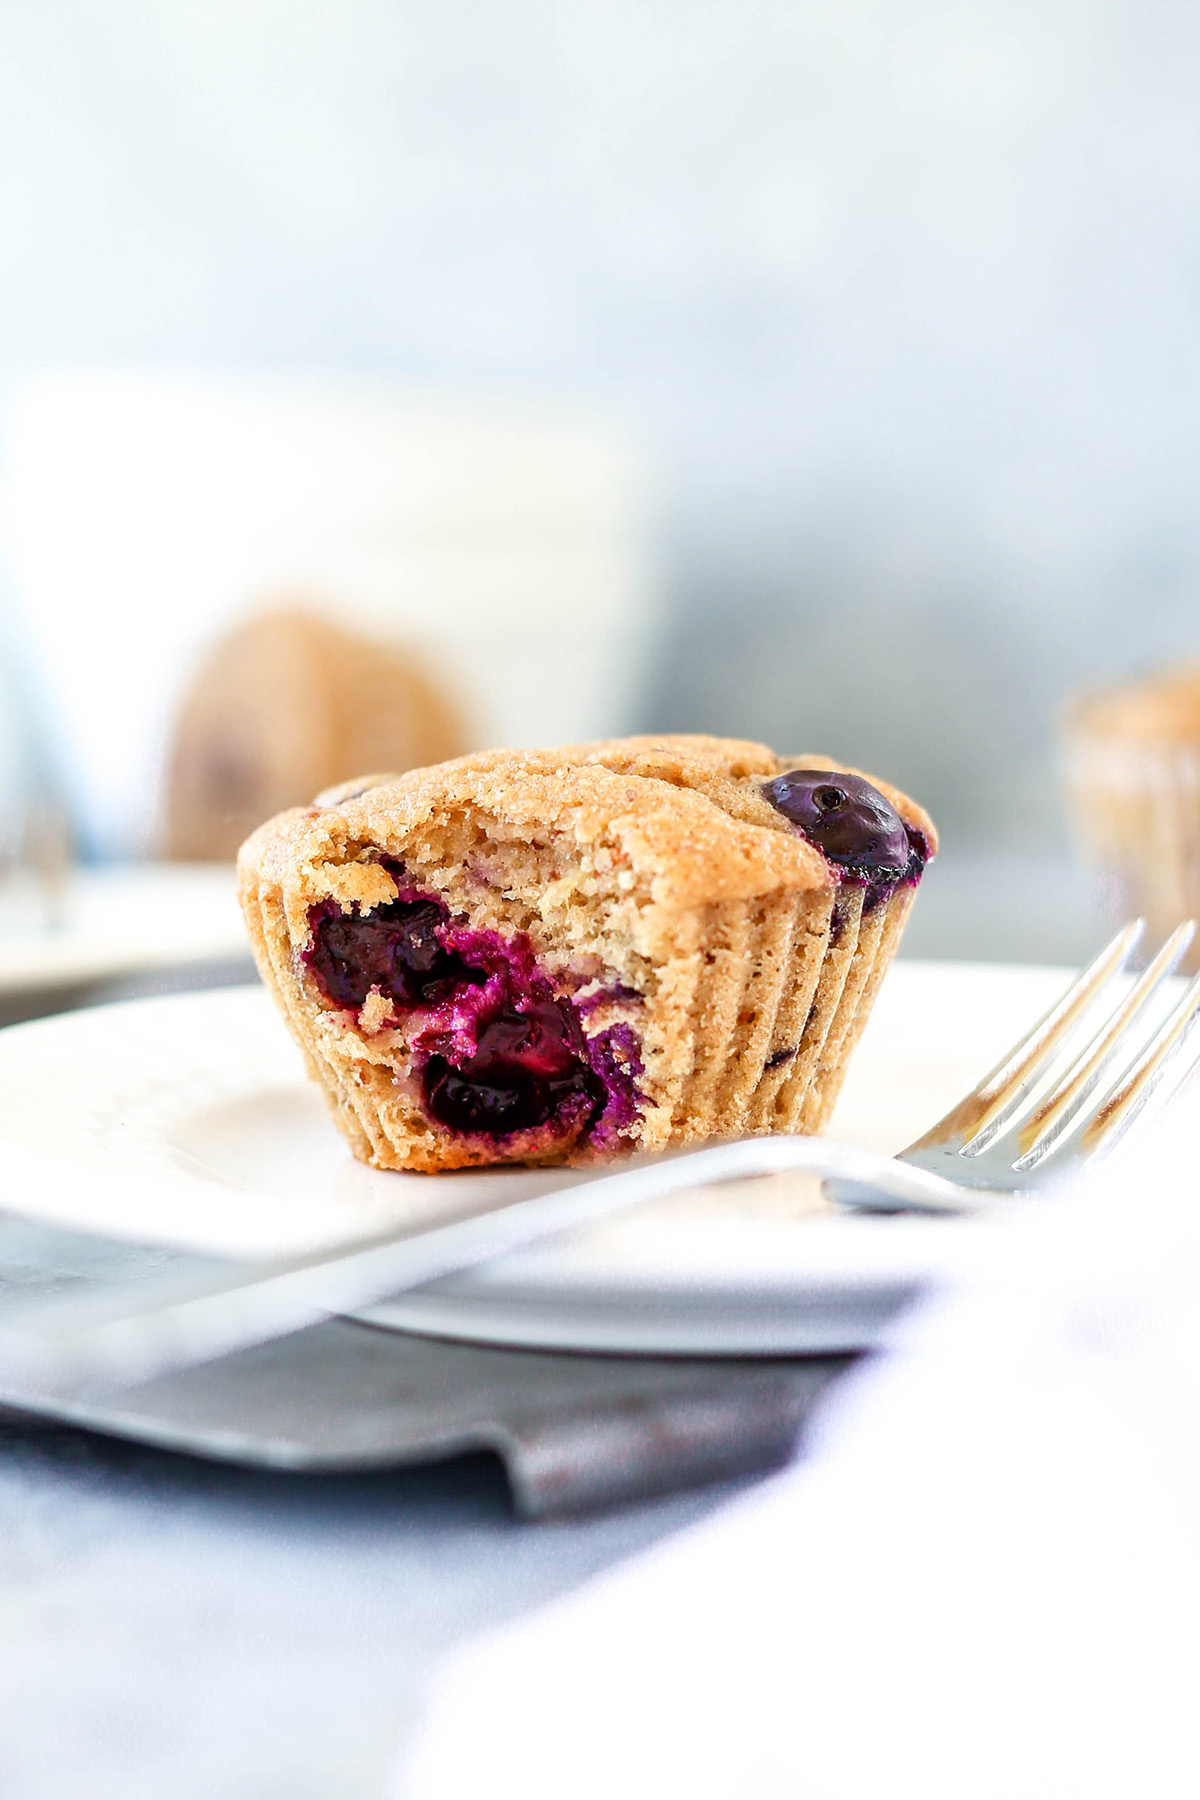 a blueberry apple muffin on a plate with a fork